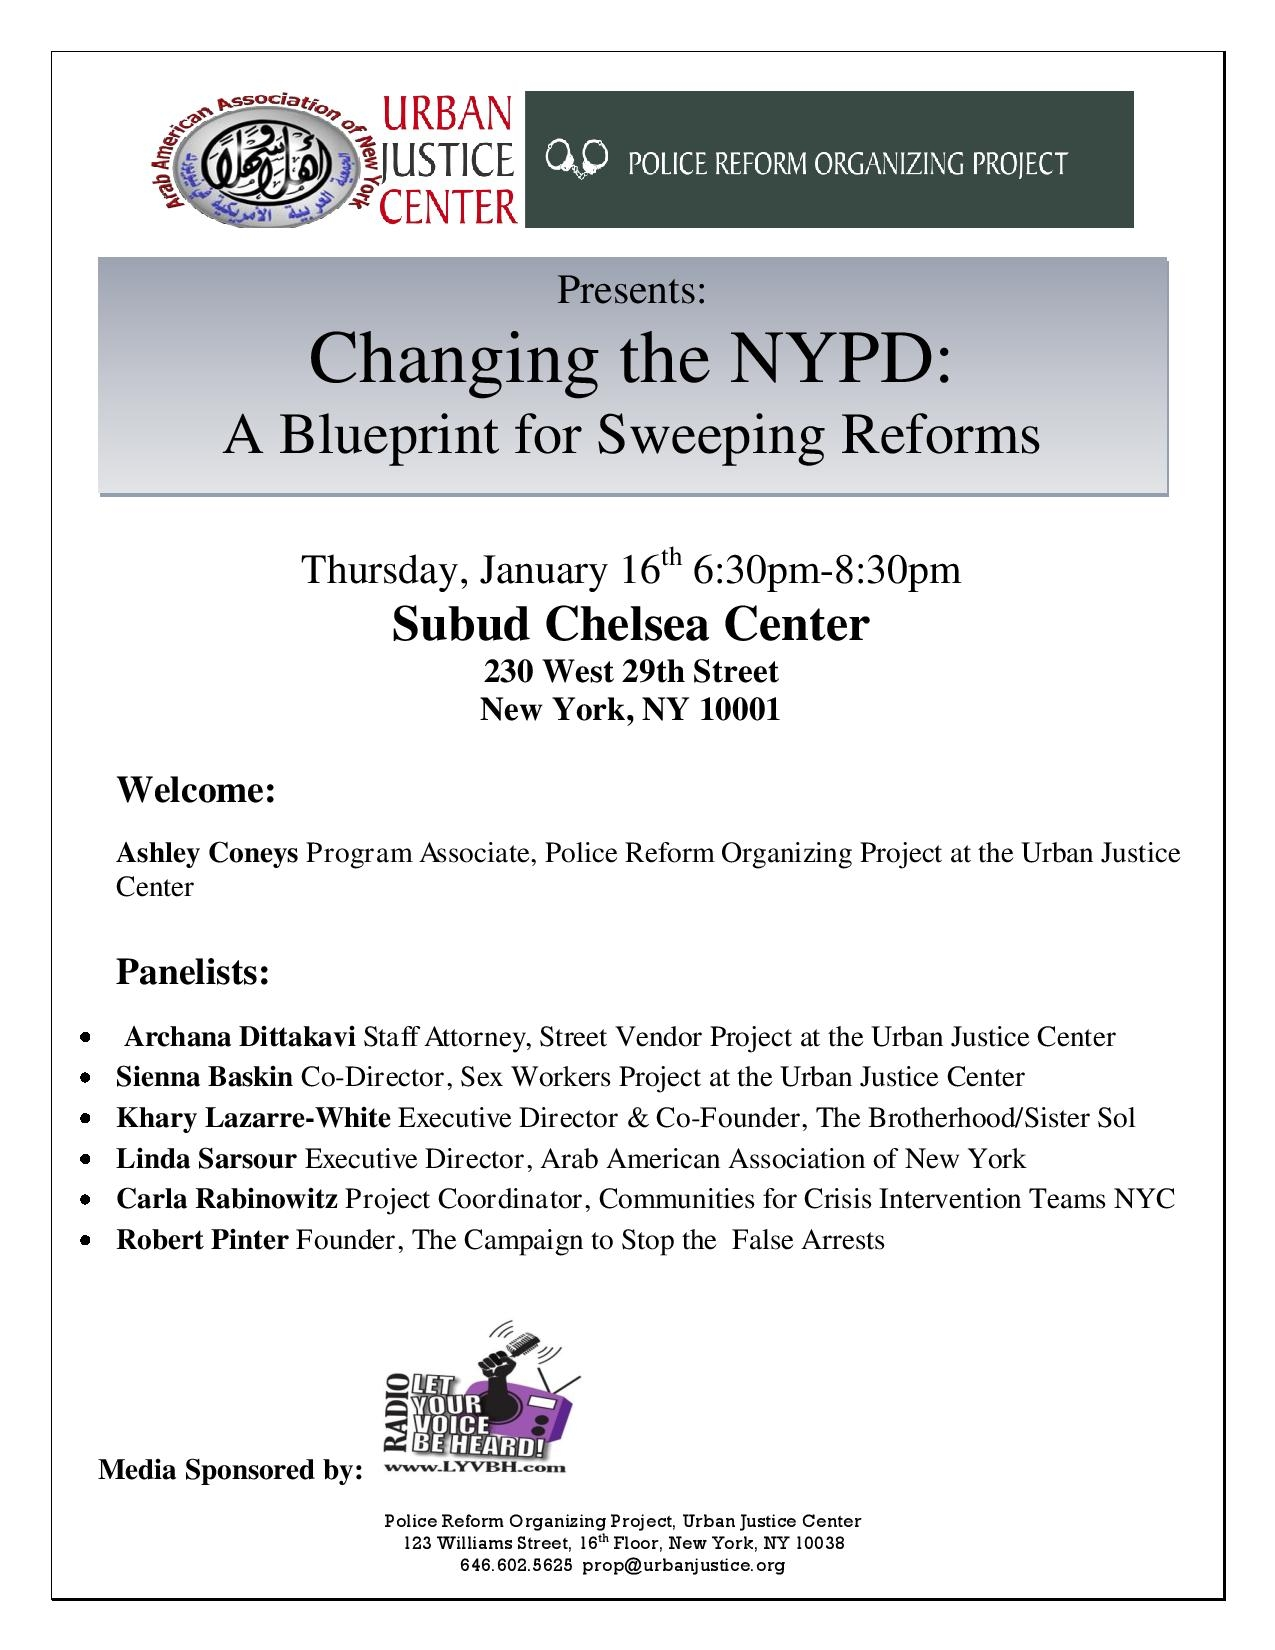 Changing the nypd a blueprint for sweeping reforms police reform posted malvernweather Image collections